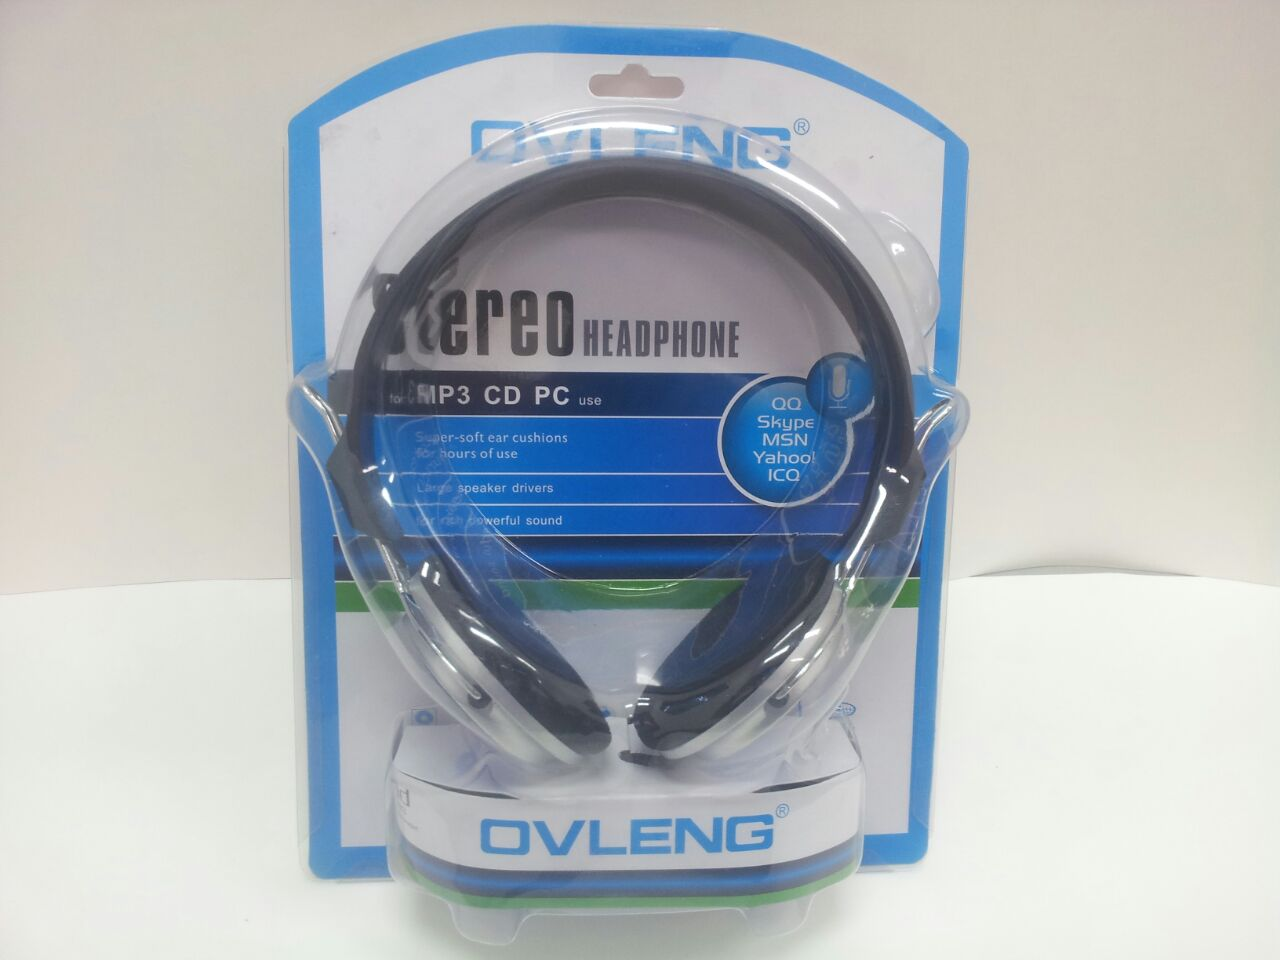 OVLENG STEREO HEADPHONE